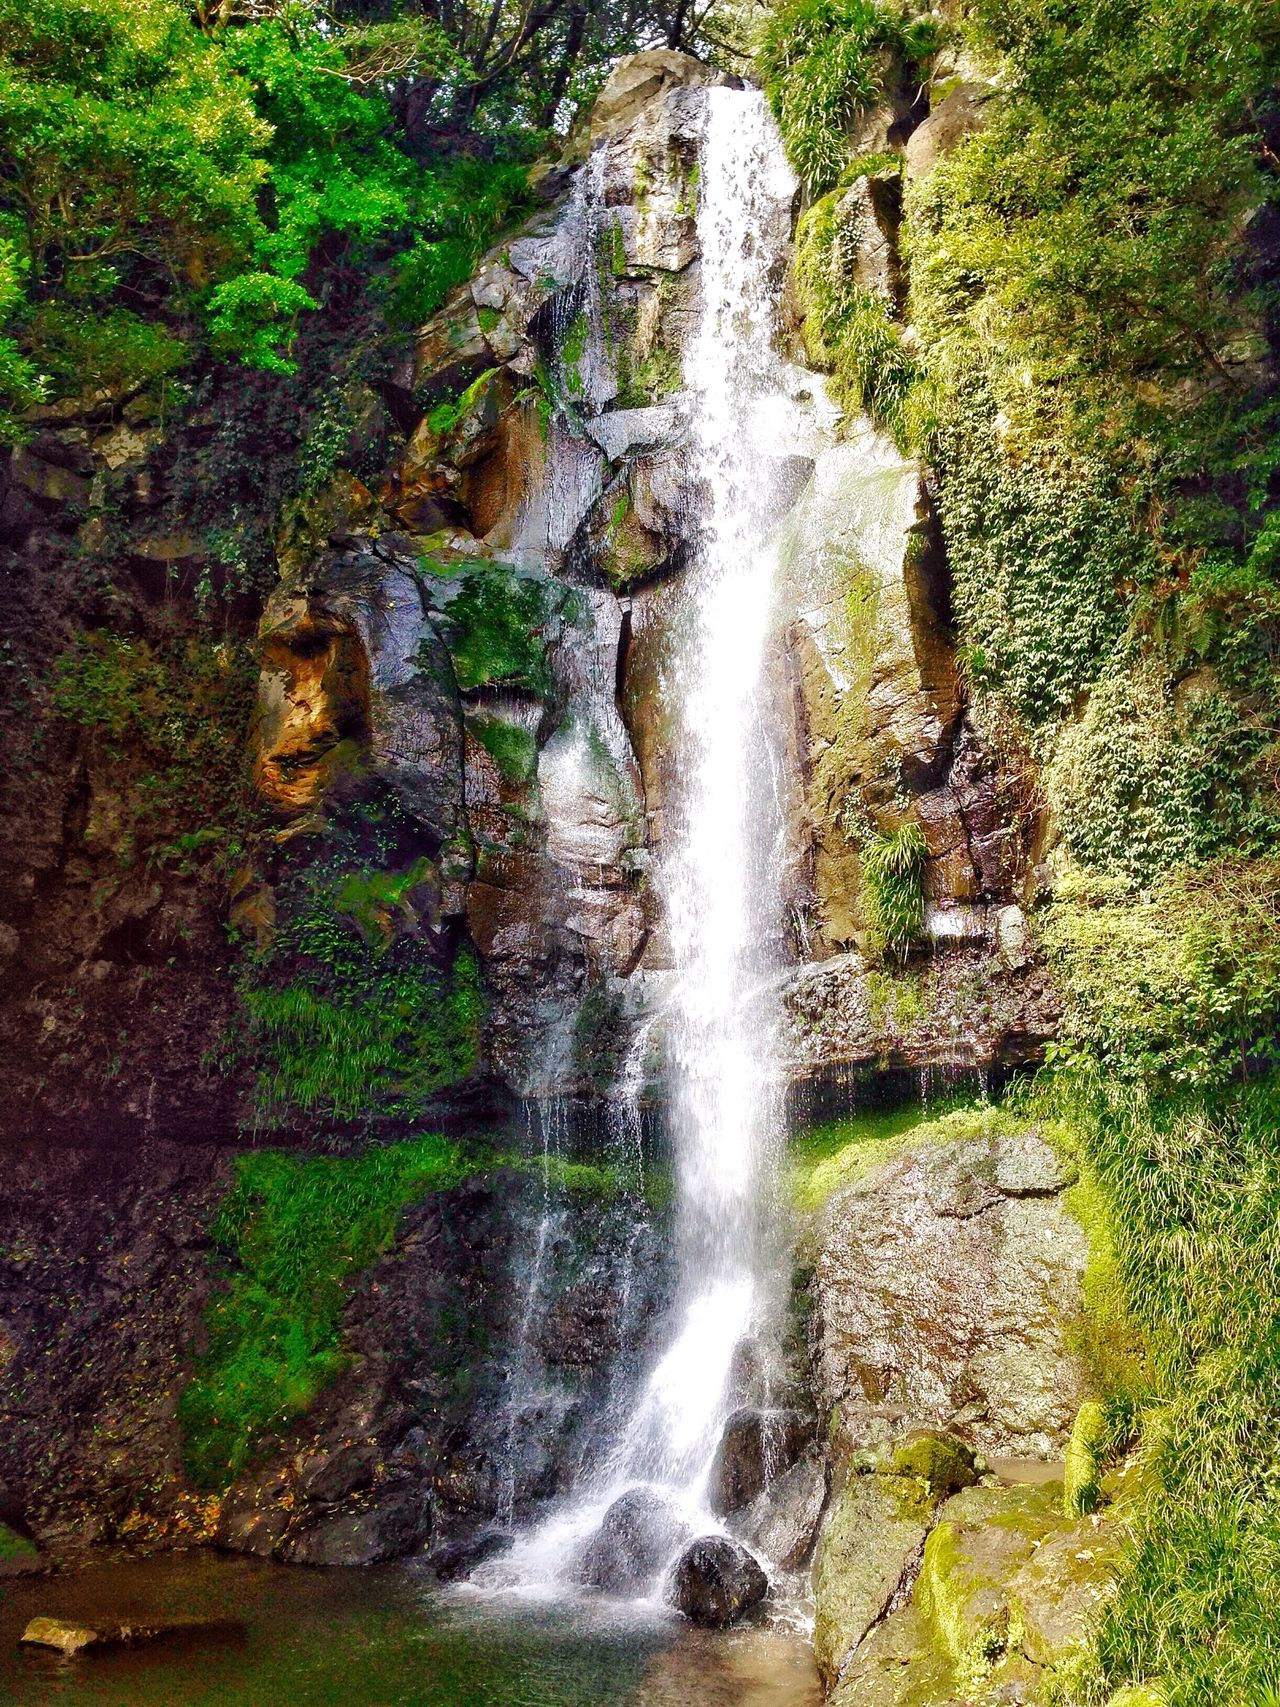 Hello World Chasing Waterfalls Waterfall #water #landscape #nature #beautiful Alwaysaventurous In The Woods In The Forest Eye Em Around The World Mountains And Valleys Creekside Trail Naturelovers Nobody Around Spring Into Spring Outdoor Photography